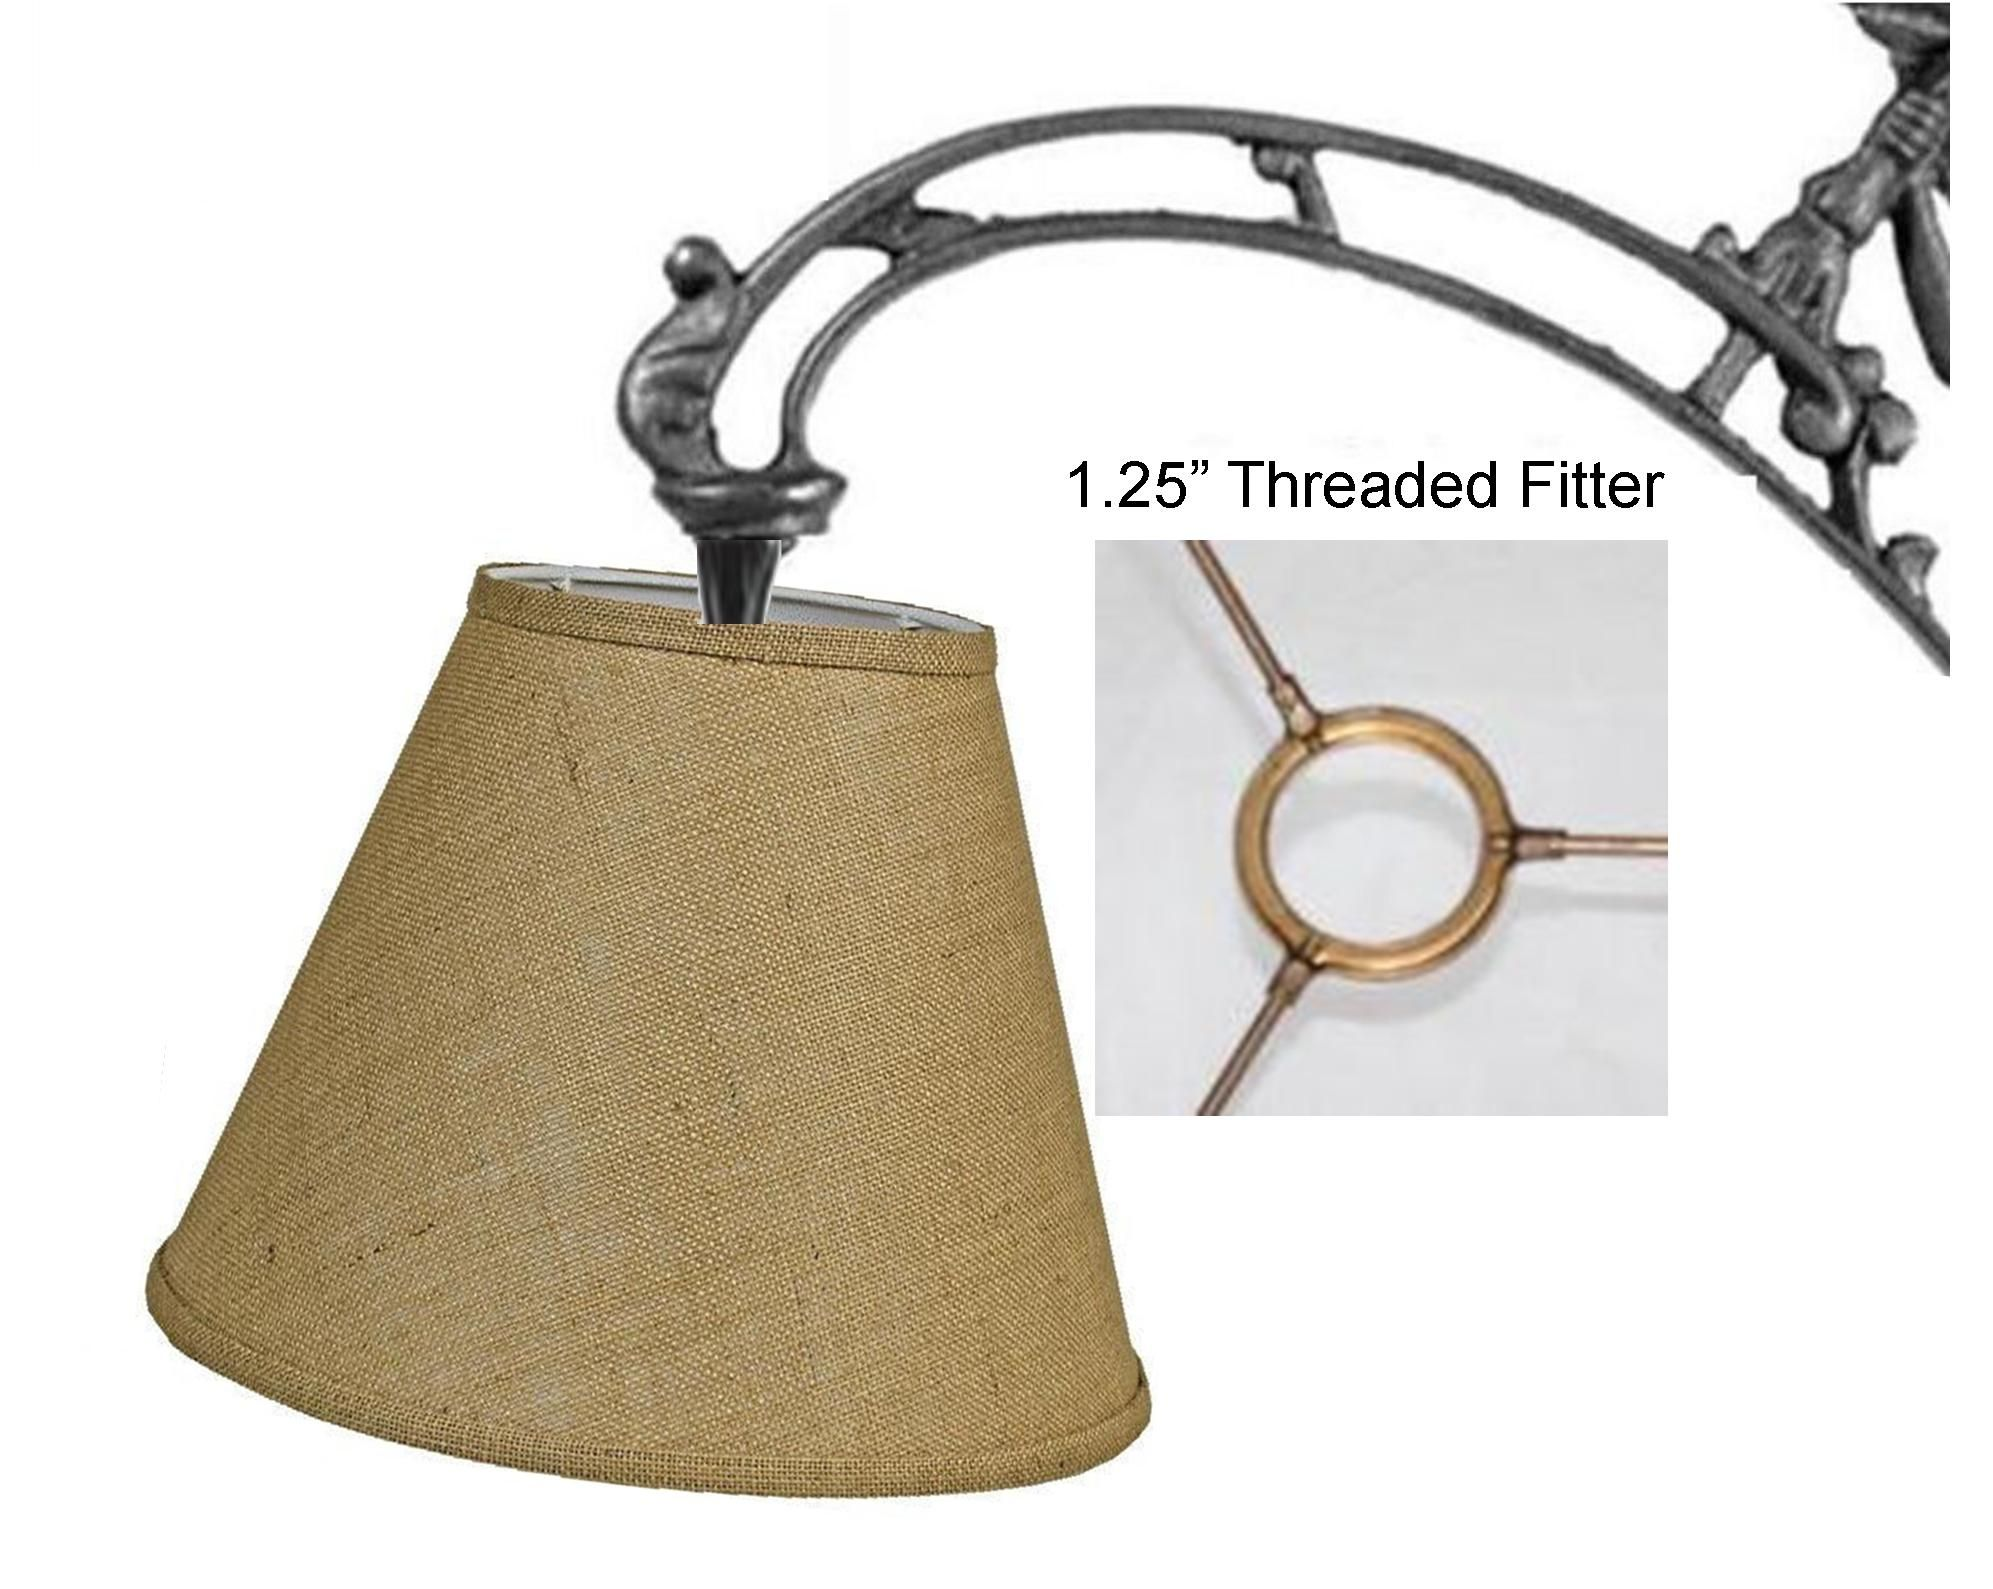 Uno lamp shade experts since 1979 screw on fitter lampshade fits floor lamps bridge arm lamps goose neck lamps and others